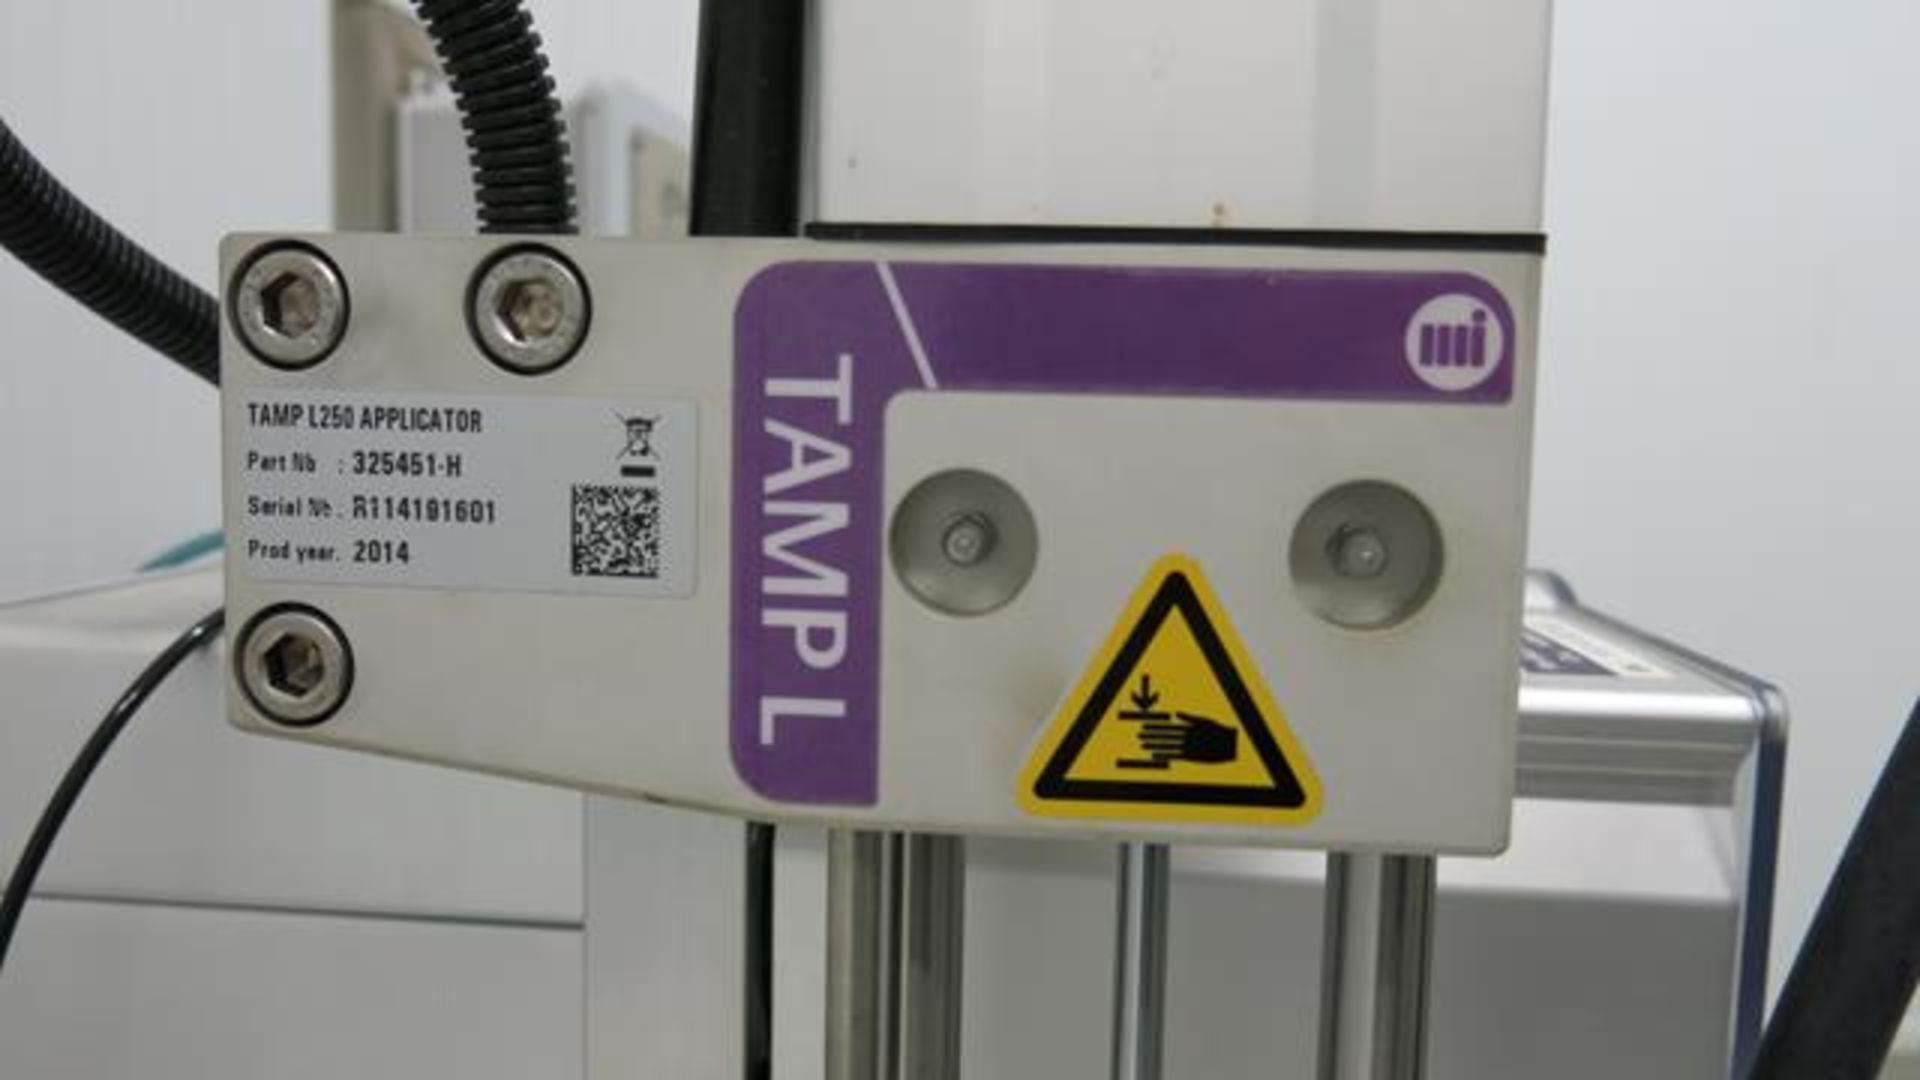 Lot 176 - ID TECHNOLOGY, TAMP L250, LABEL PRINTER / APPLICATOR WITH CONVEYOR, S/N R114191601, 2014 (RIGGING $